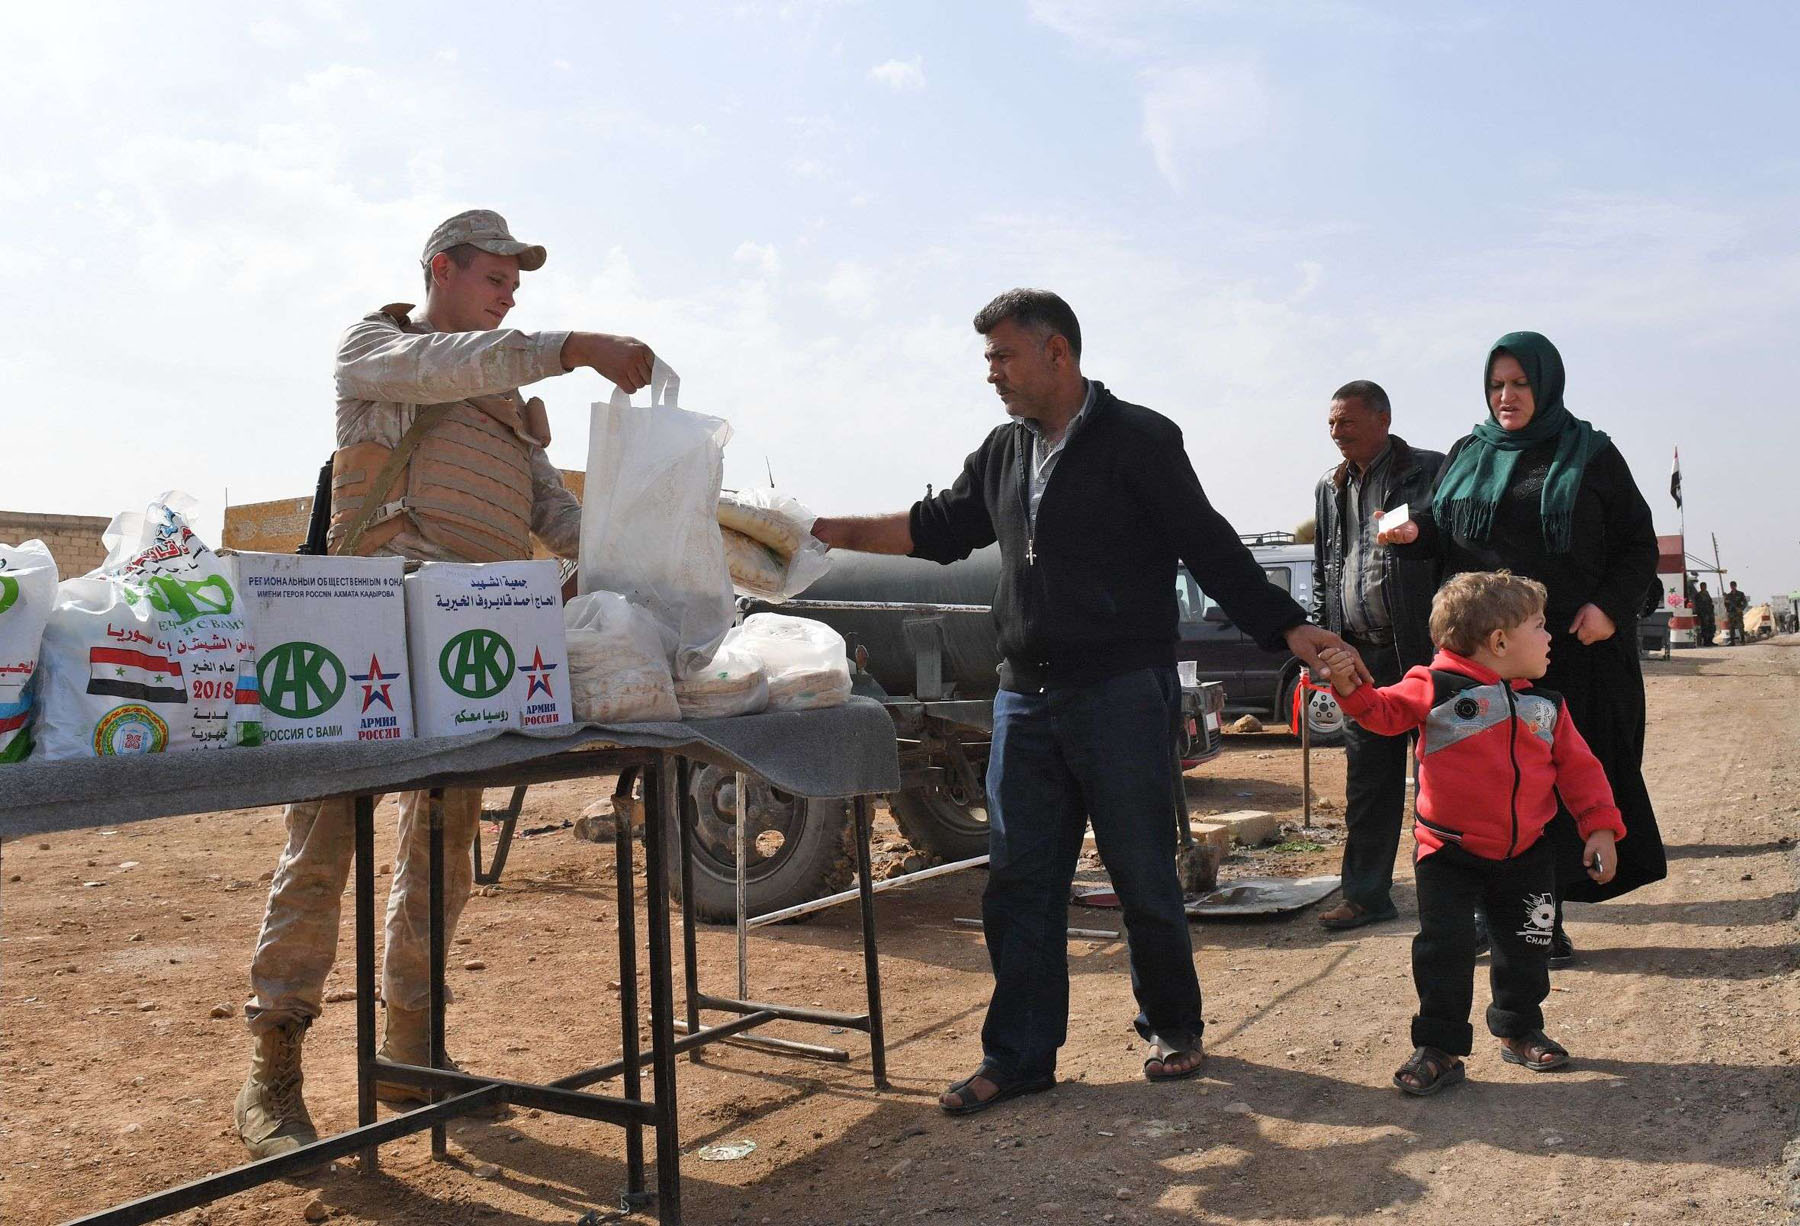 Assertive moves. Syrian families receive aid from Russian soldiers at the Abu Duhur crossing on the eastern edge of Idlib province, last October. (AFP)